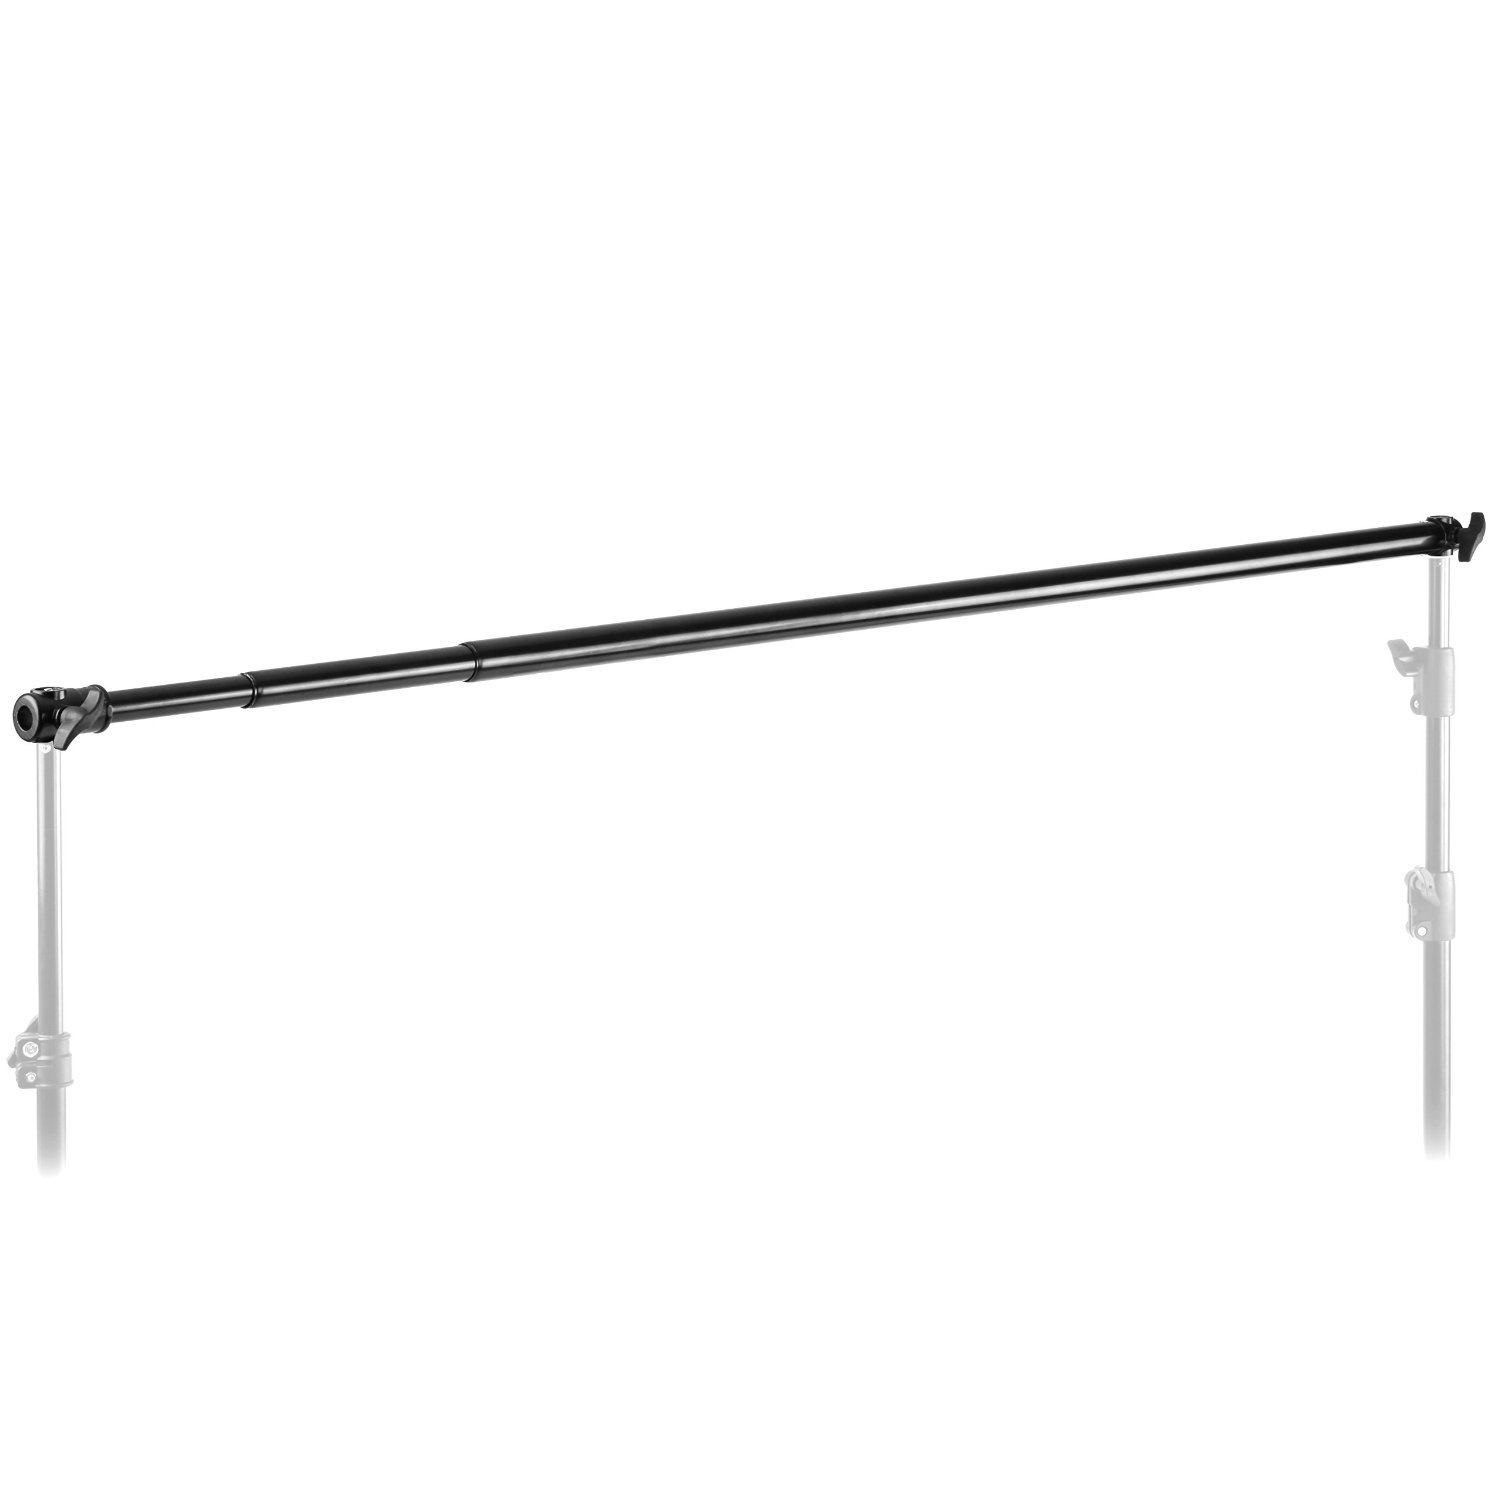 Neewer Pro 10 Feet/3M Aluminum Alloy 3 Section Telescopic Background Support Cross Arm Crossbar(Black) by Neewer